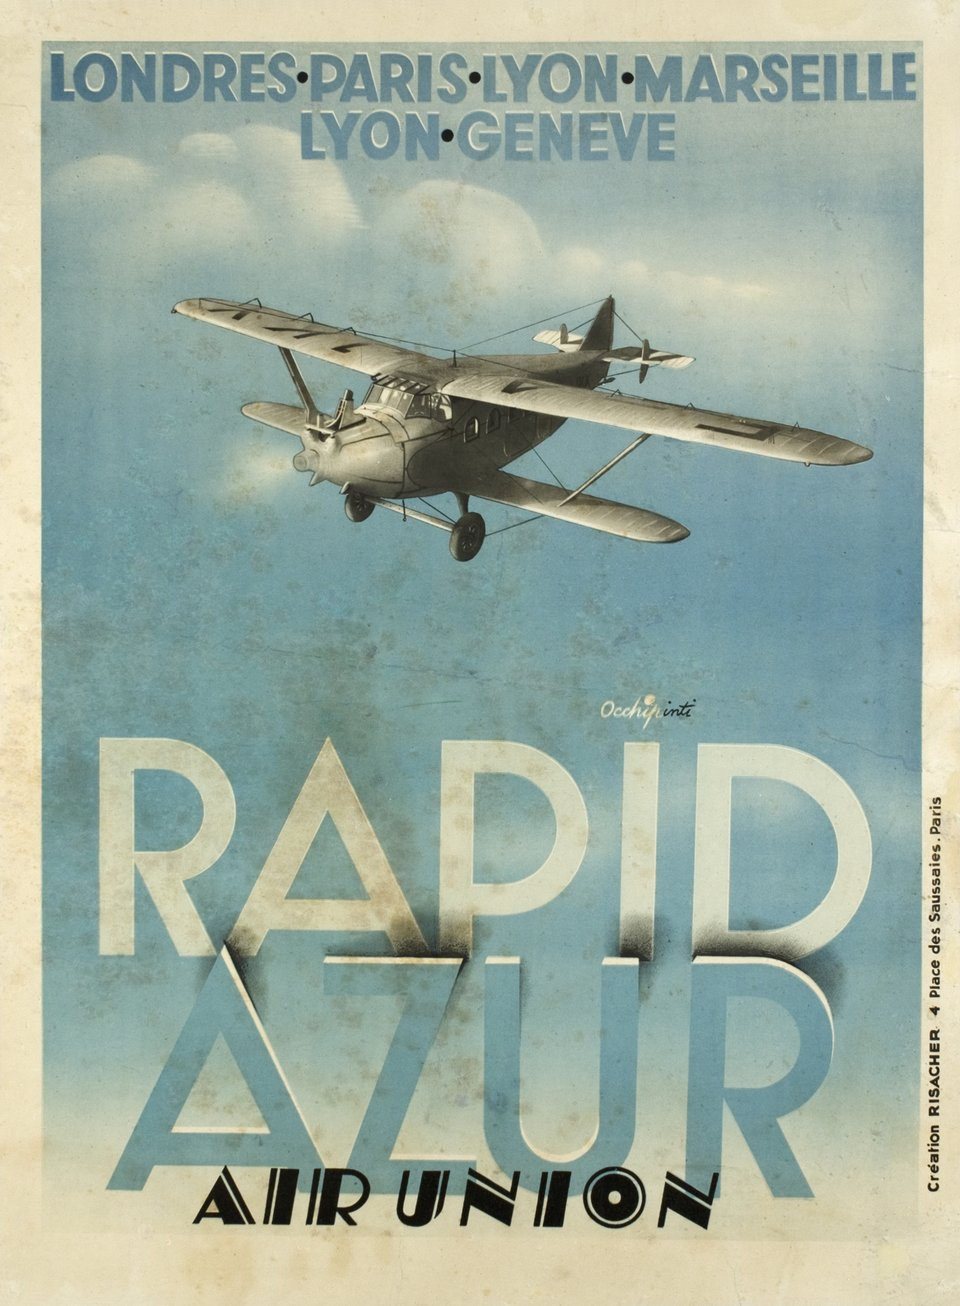 Rapid Azur, Air Union – Affiche ancienne – OCCHIPINTI – 1929